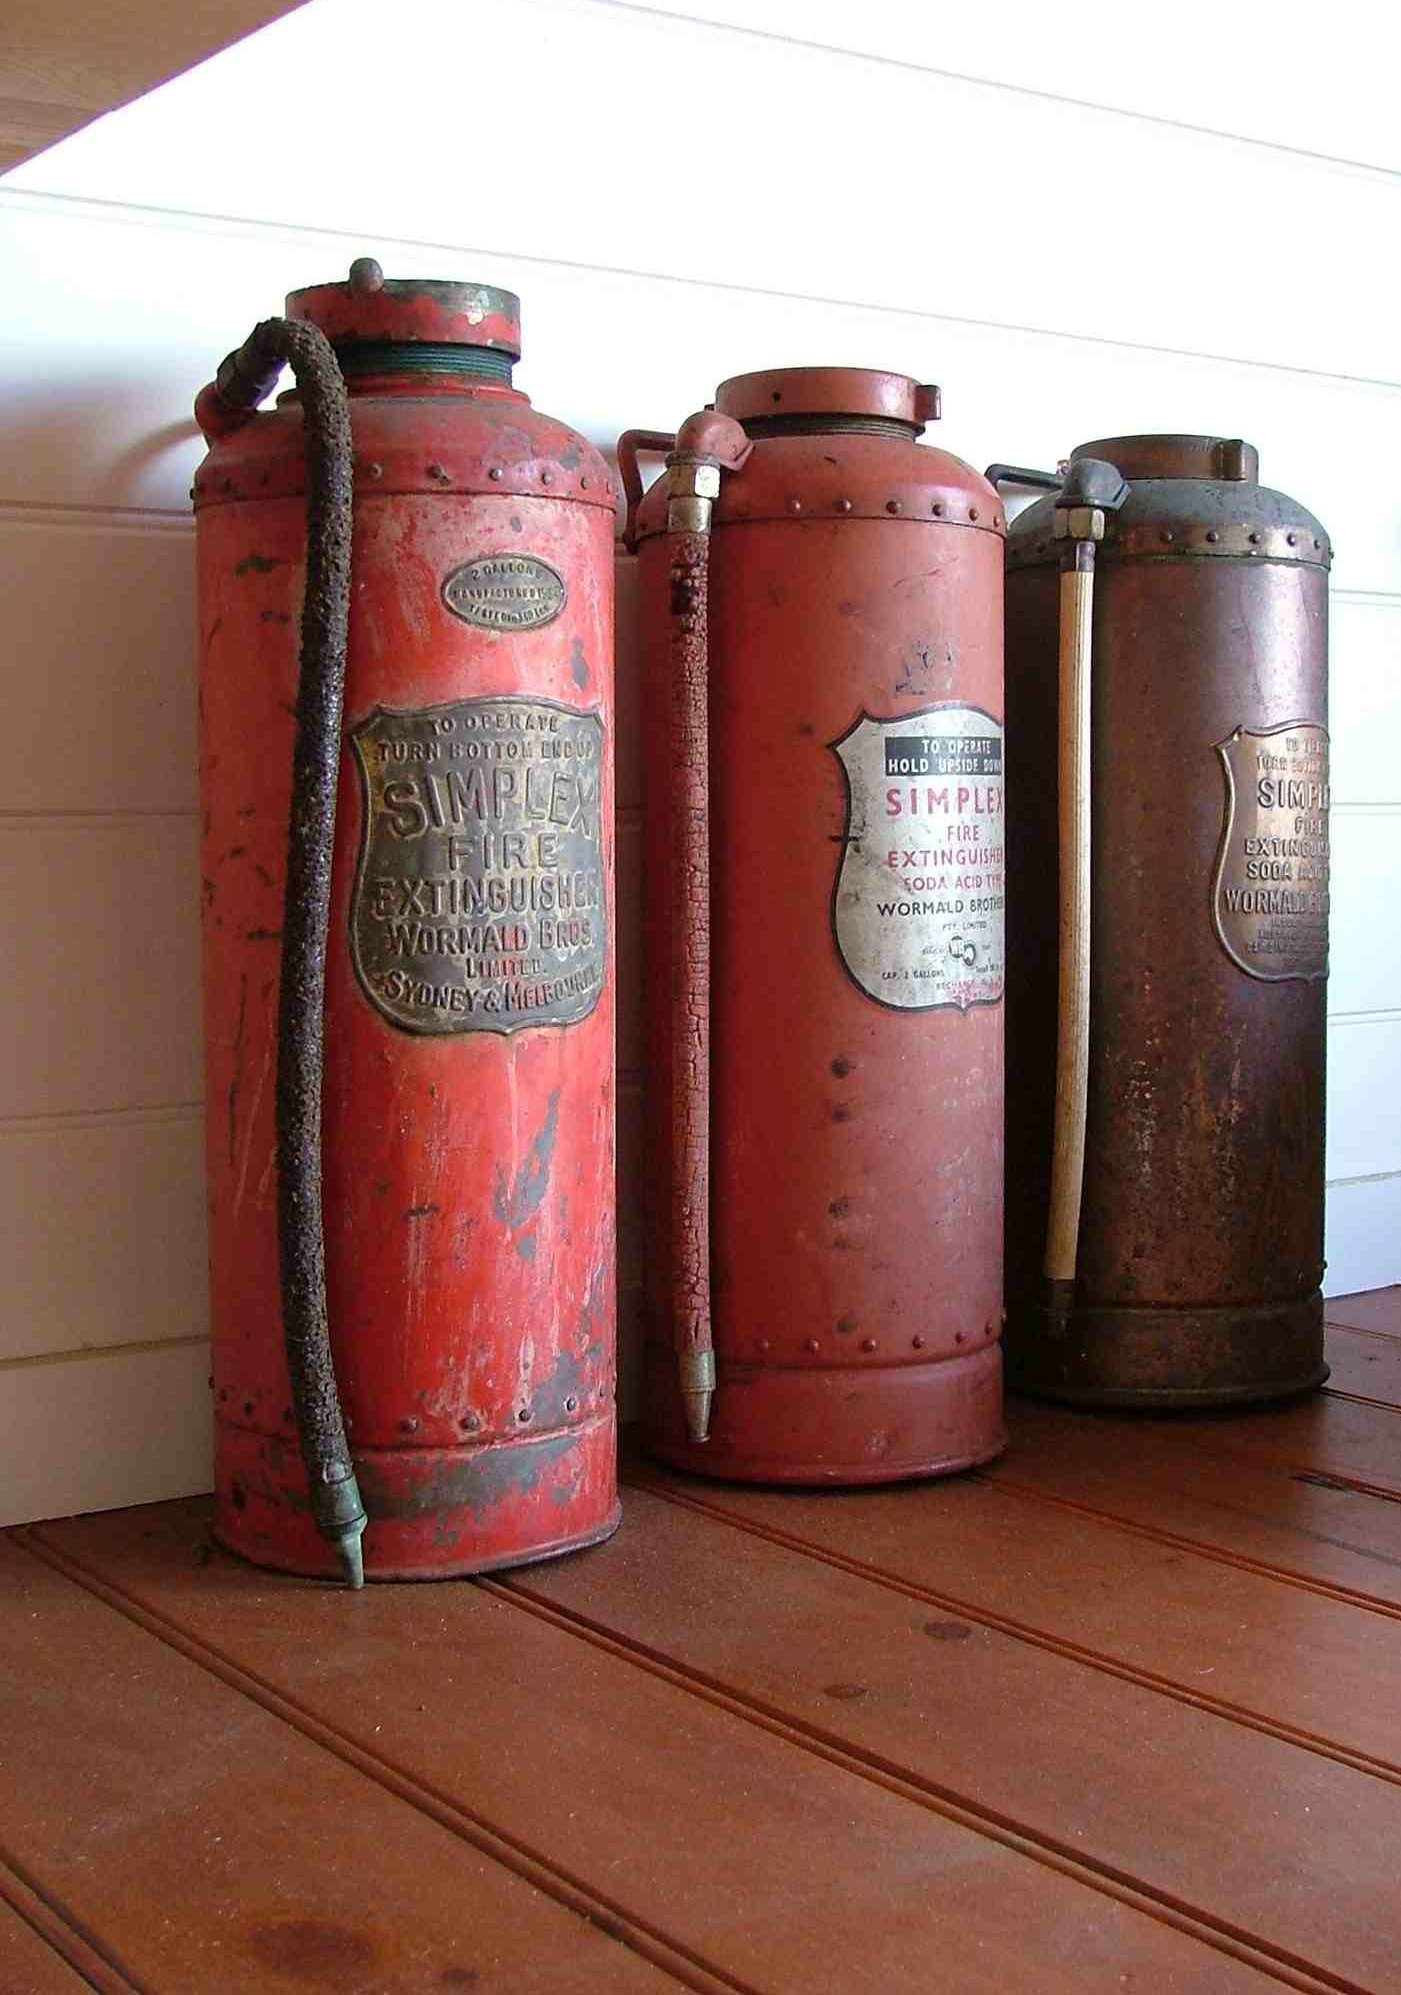 vintage fire extinguishers from Warnambool maritime museum.